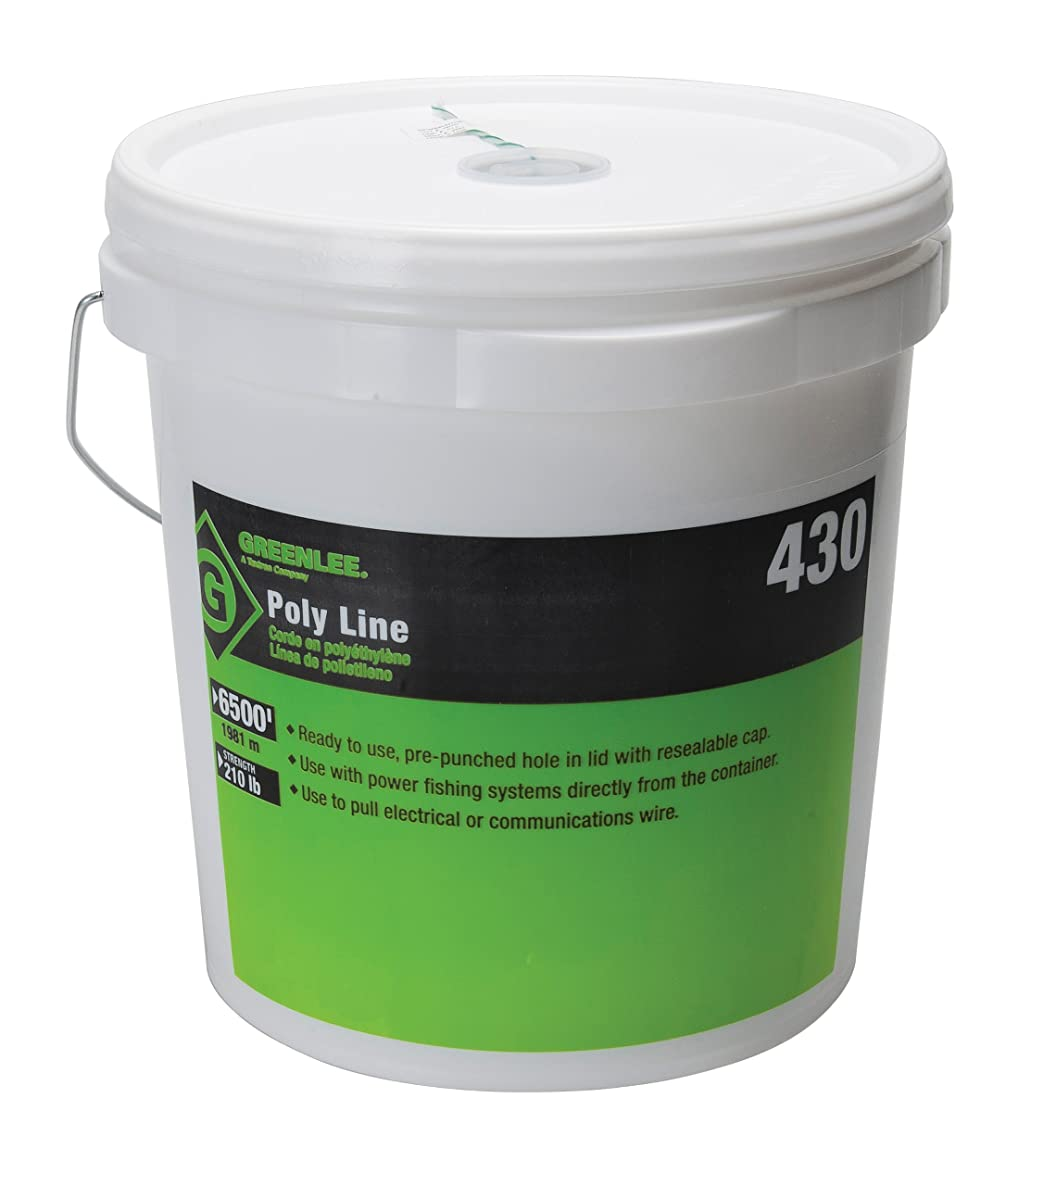 Greenlee 430 Poly Fish Line Tracer Green, 6500-Foot